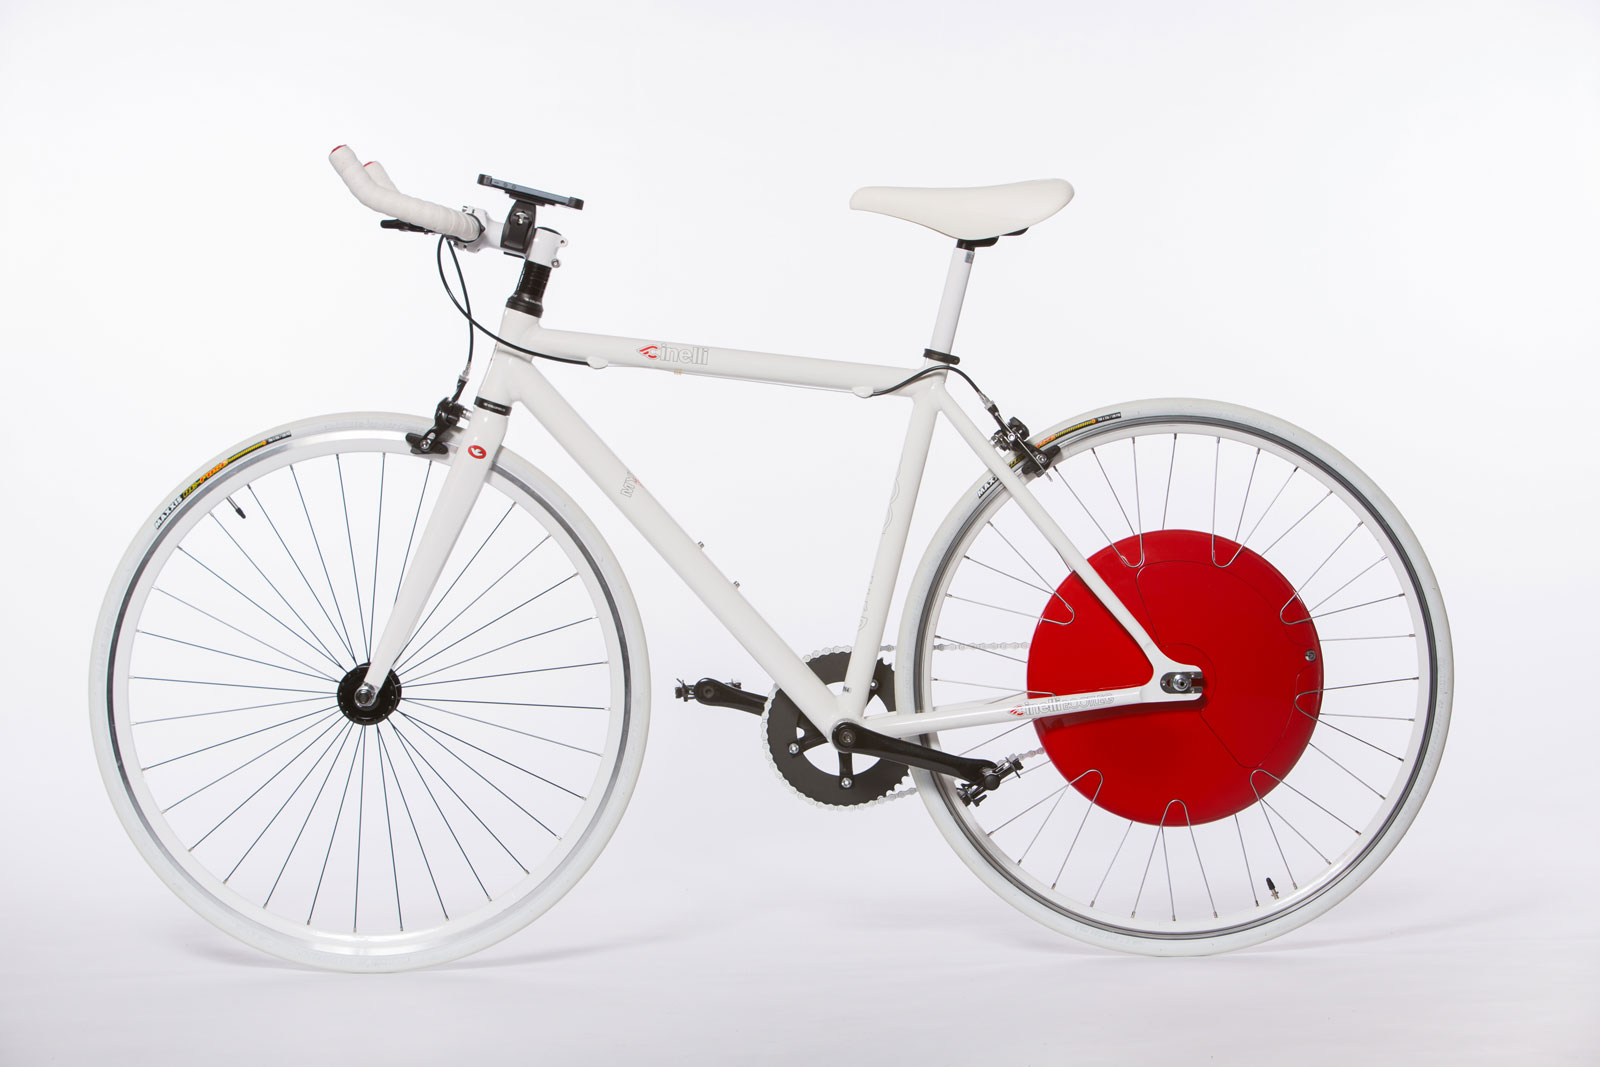 The Copenhagen Wheel is shown here on a bike with a single rear gear, but it's also available for multi-speed bikes that change gears with a rear derailleur.